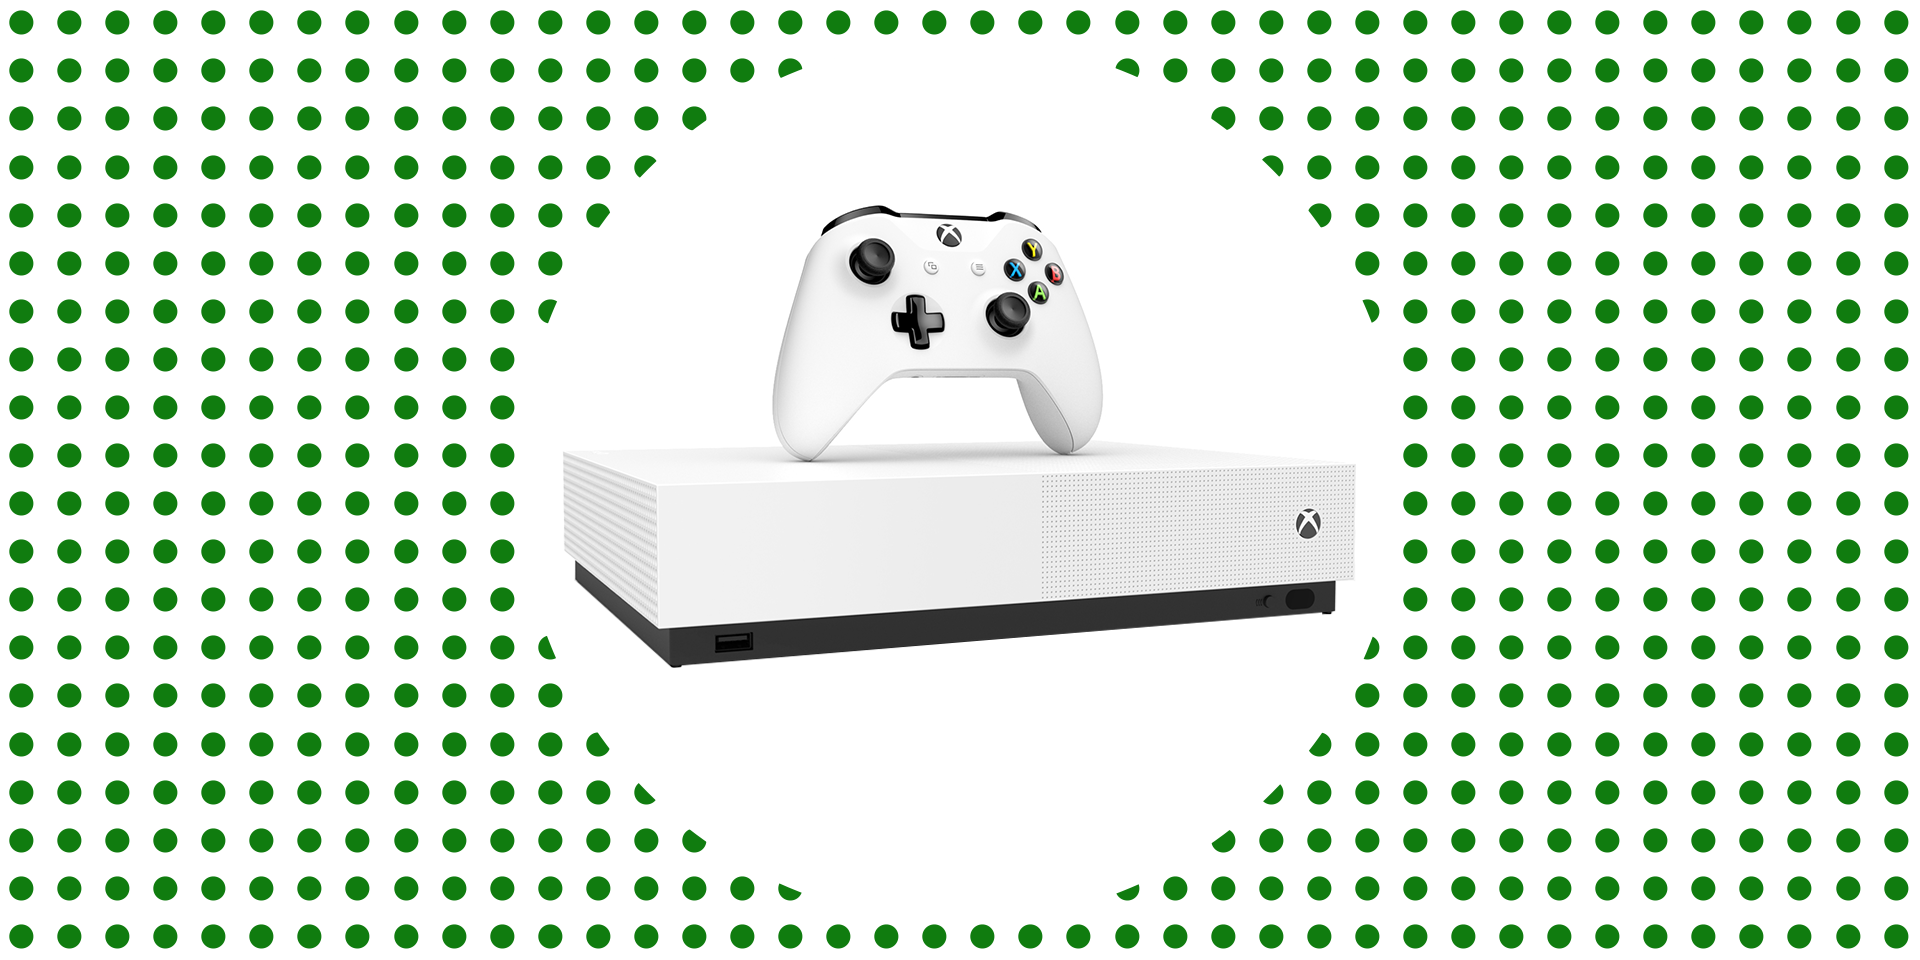 Microsoft S All Digital Xbox Won T Have A Disc Reader Preorder New Xbox One S Video Game System